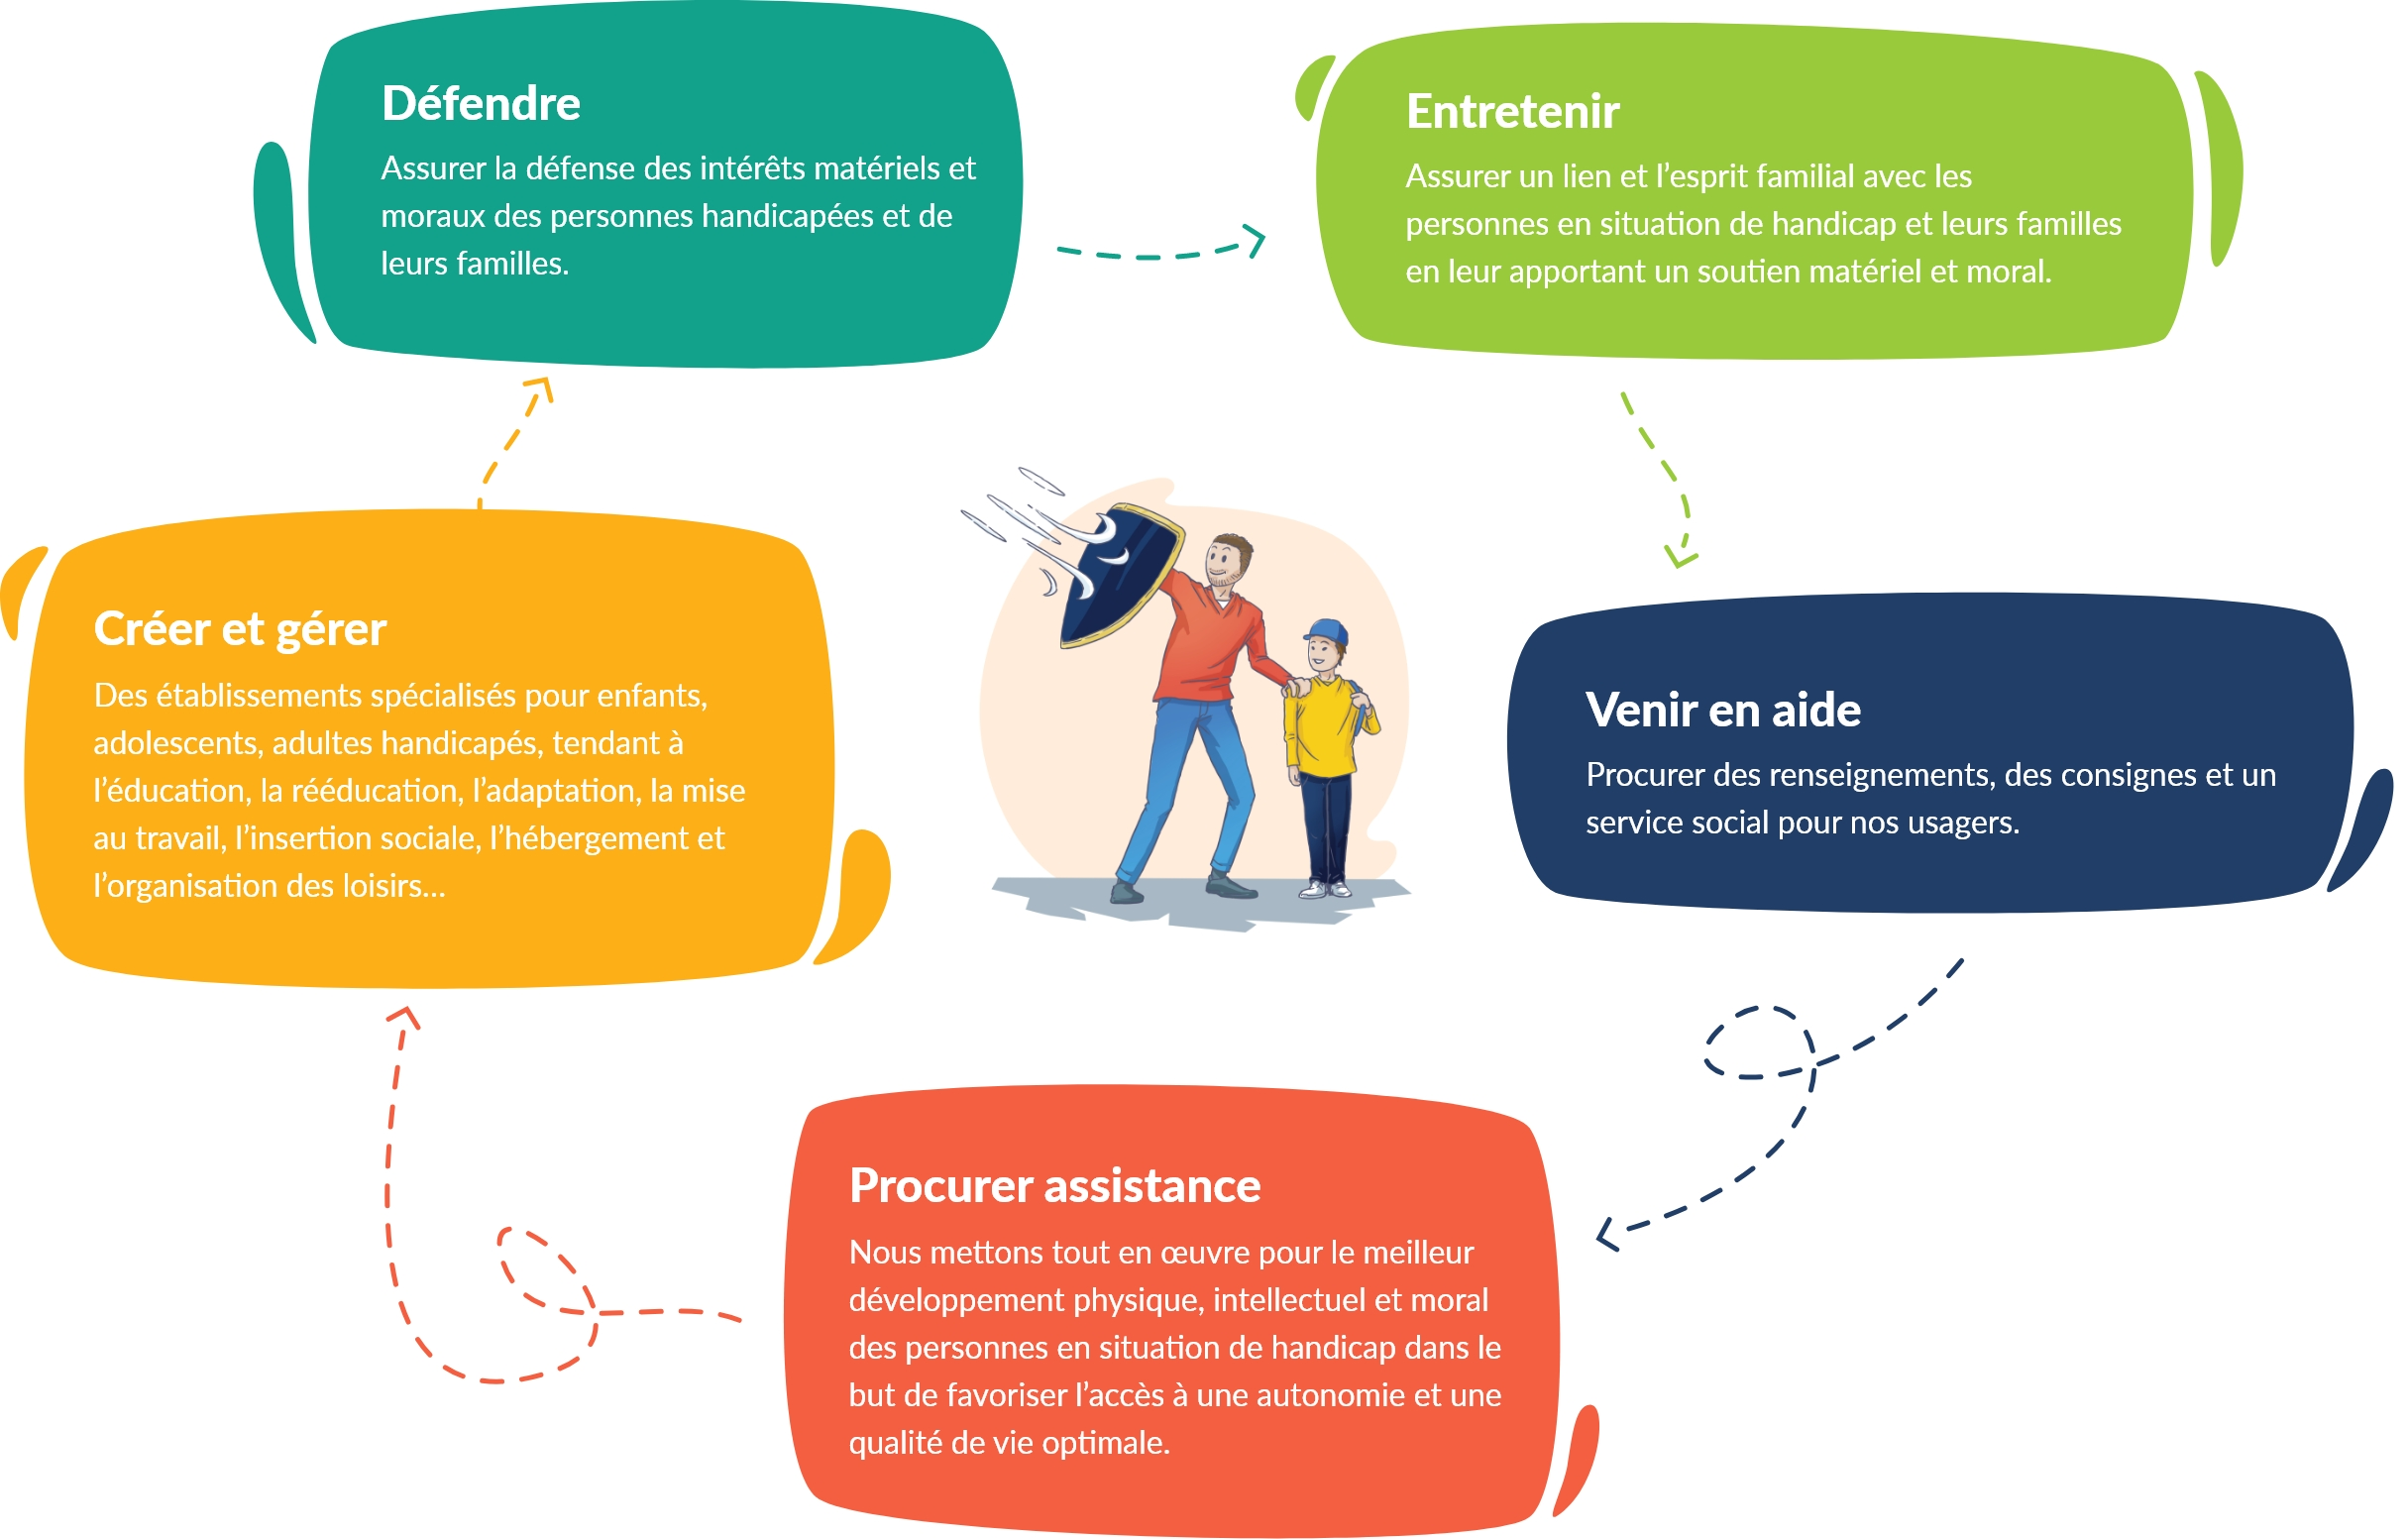 apei-accompagner-personnes-situation-handicap-notre-but-hd